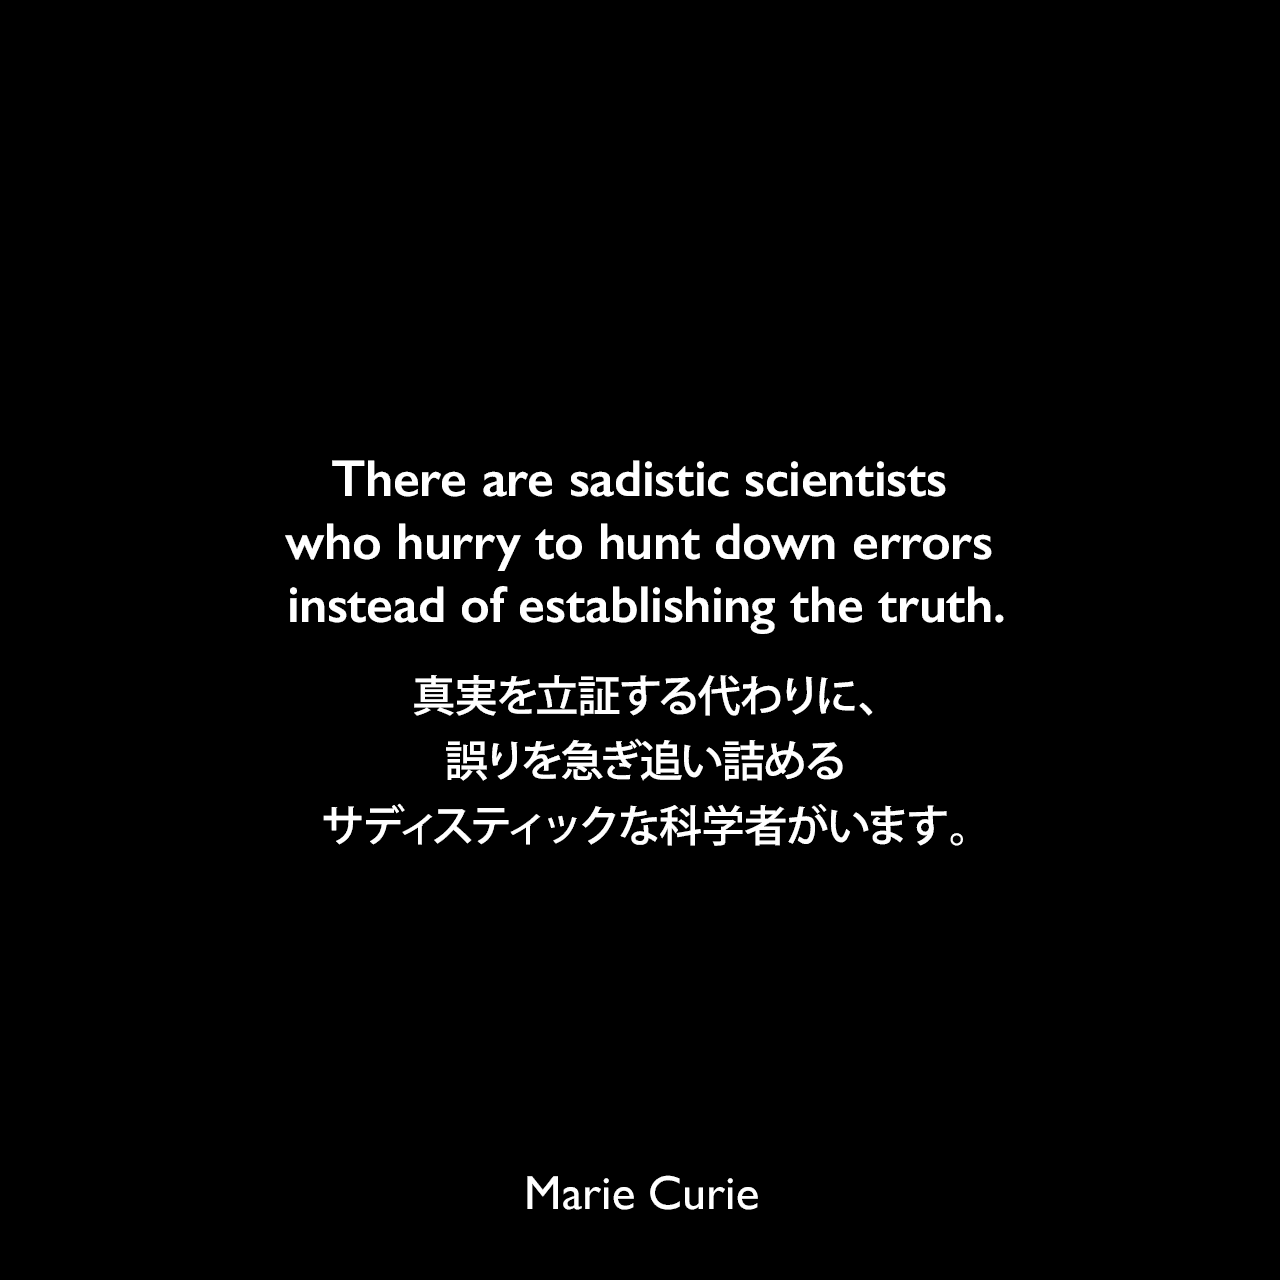 There are sadistic scientists who hurry to hunt down errors instead of establishing the truth.真実を立証する代わりに、誤りを急ぎ追い詰めるサディスティックな科学者がいます。- スコット・W・バリーによる本「The Commodity Trader's Almanac 2007」よりMarie Curie